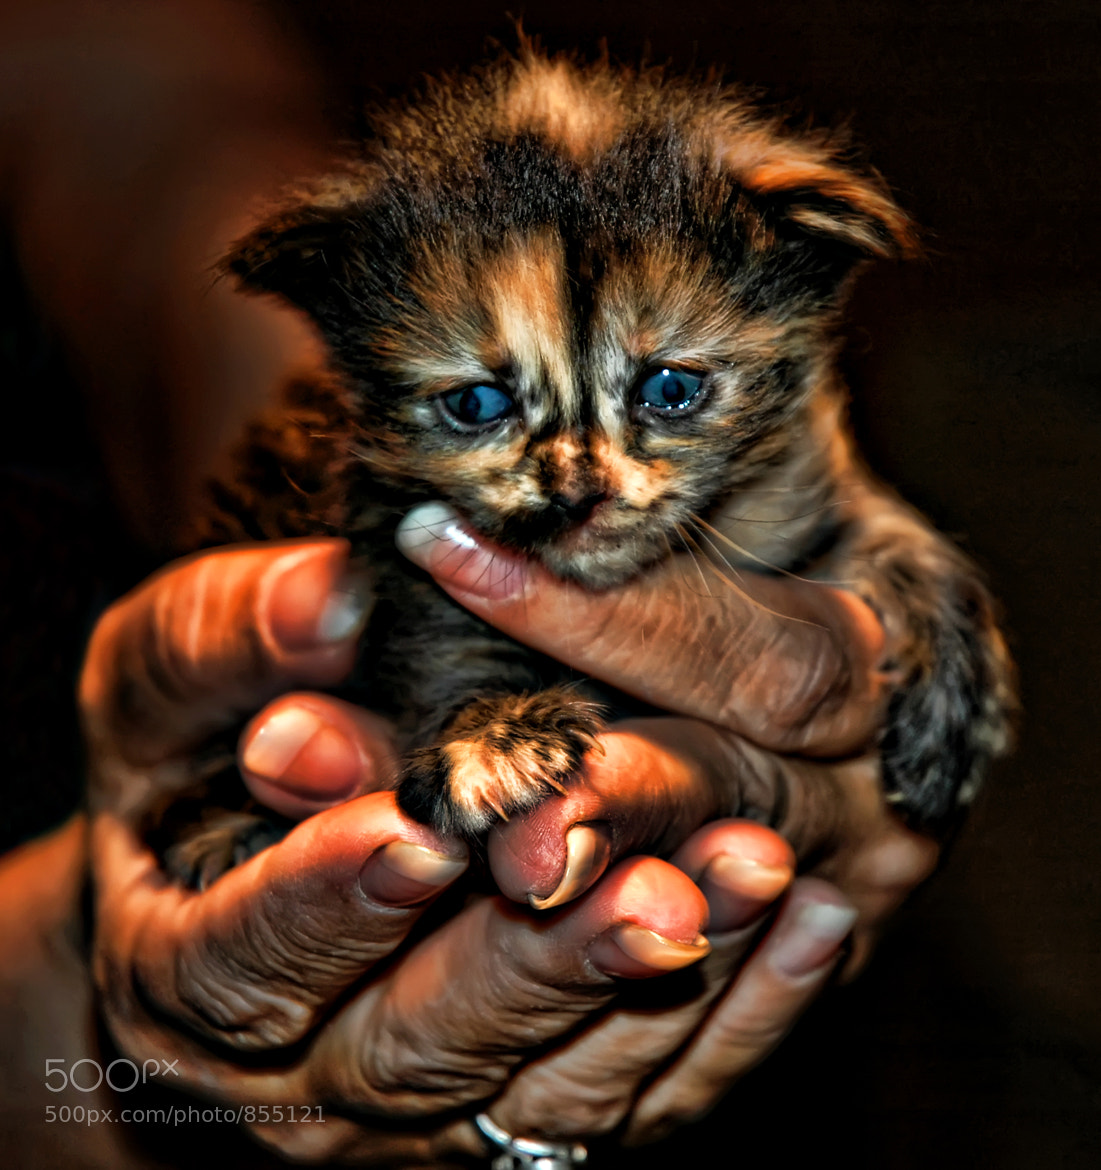 Photograph In Tender Hands by Jeff Clow on 500px